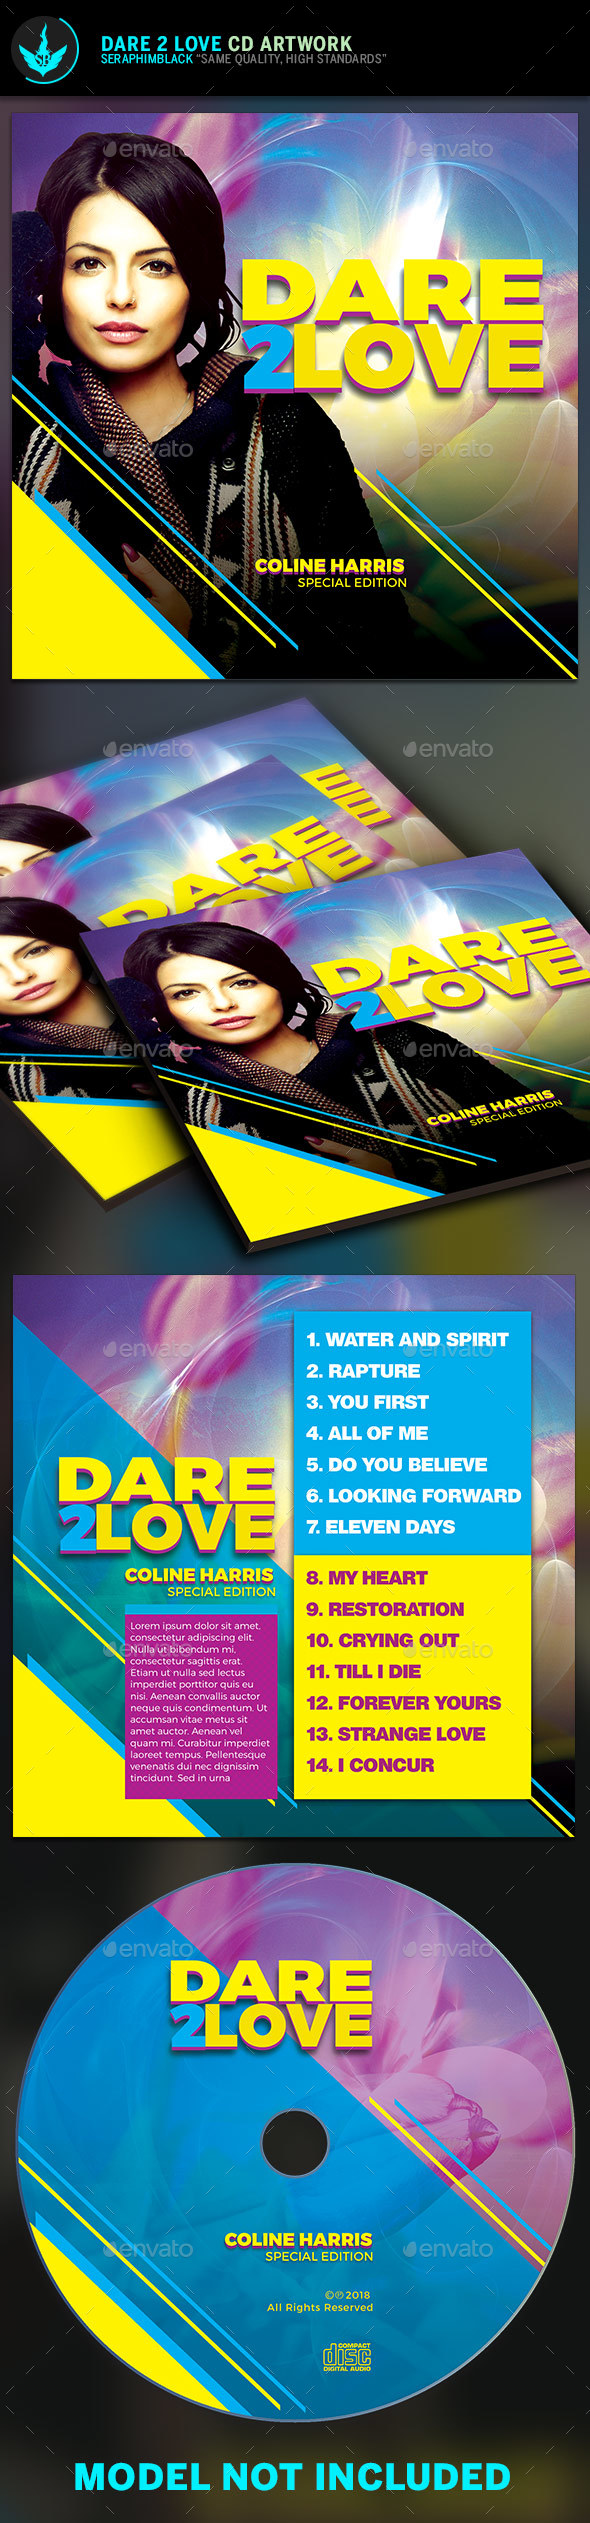 Dare 2 Love CD Artwork Template - CD & DVD Artwork Print Templates